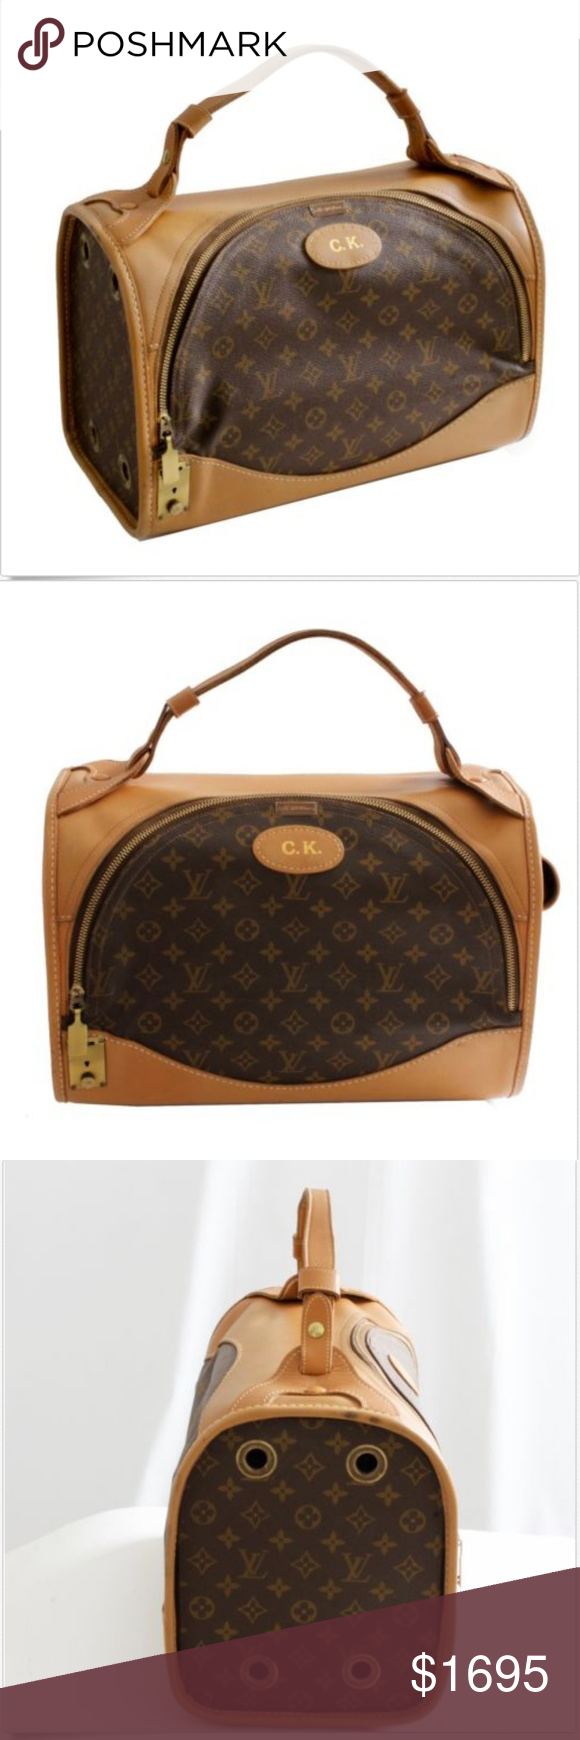 00f035ec73a Louis Vuitton French Company Sac Chien Dog Carrier Authentic ...